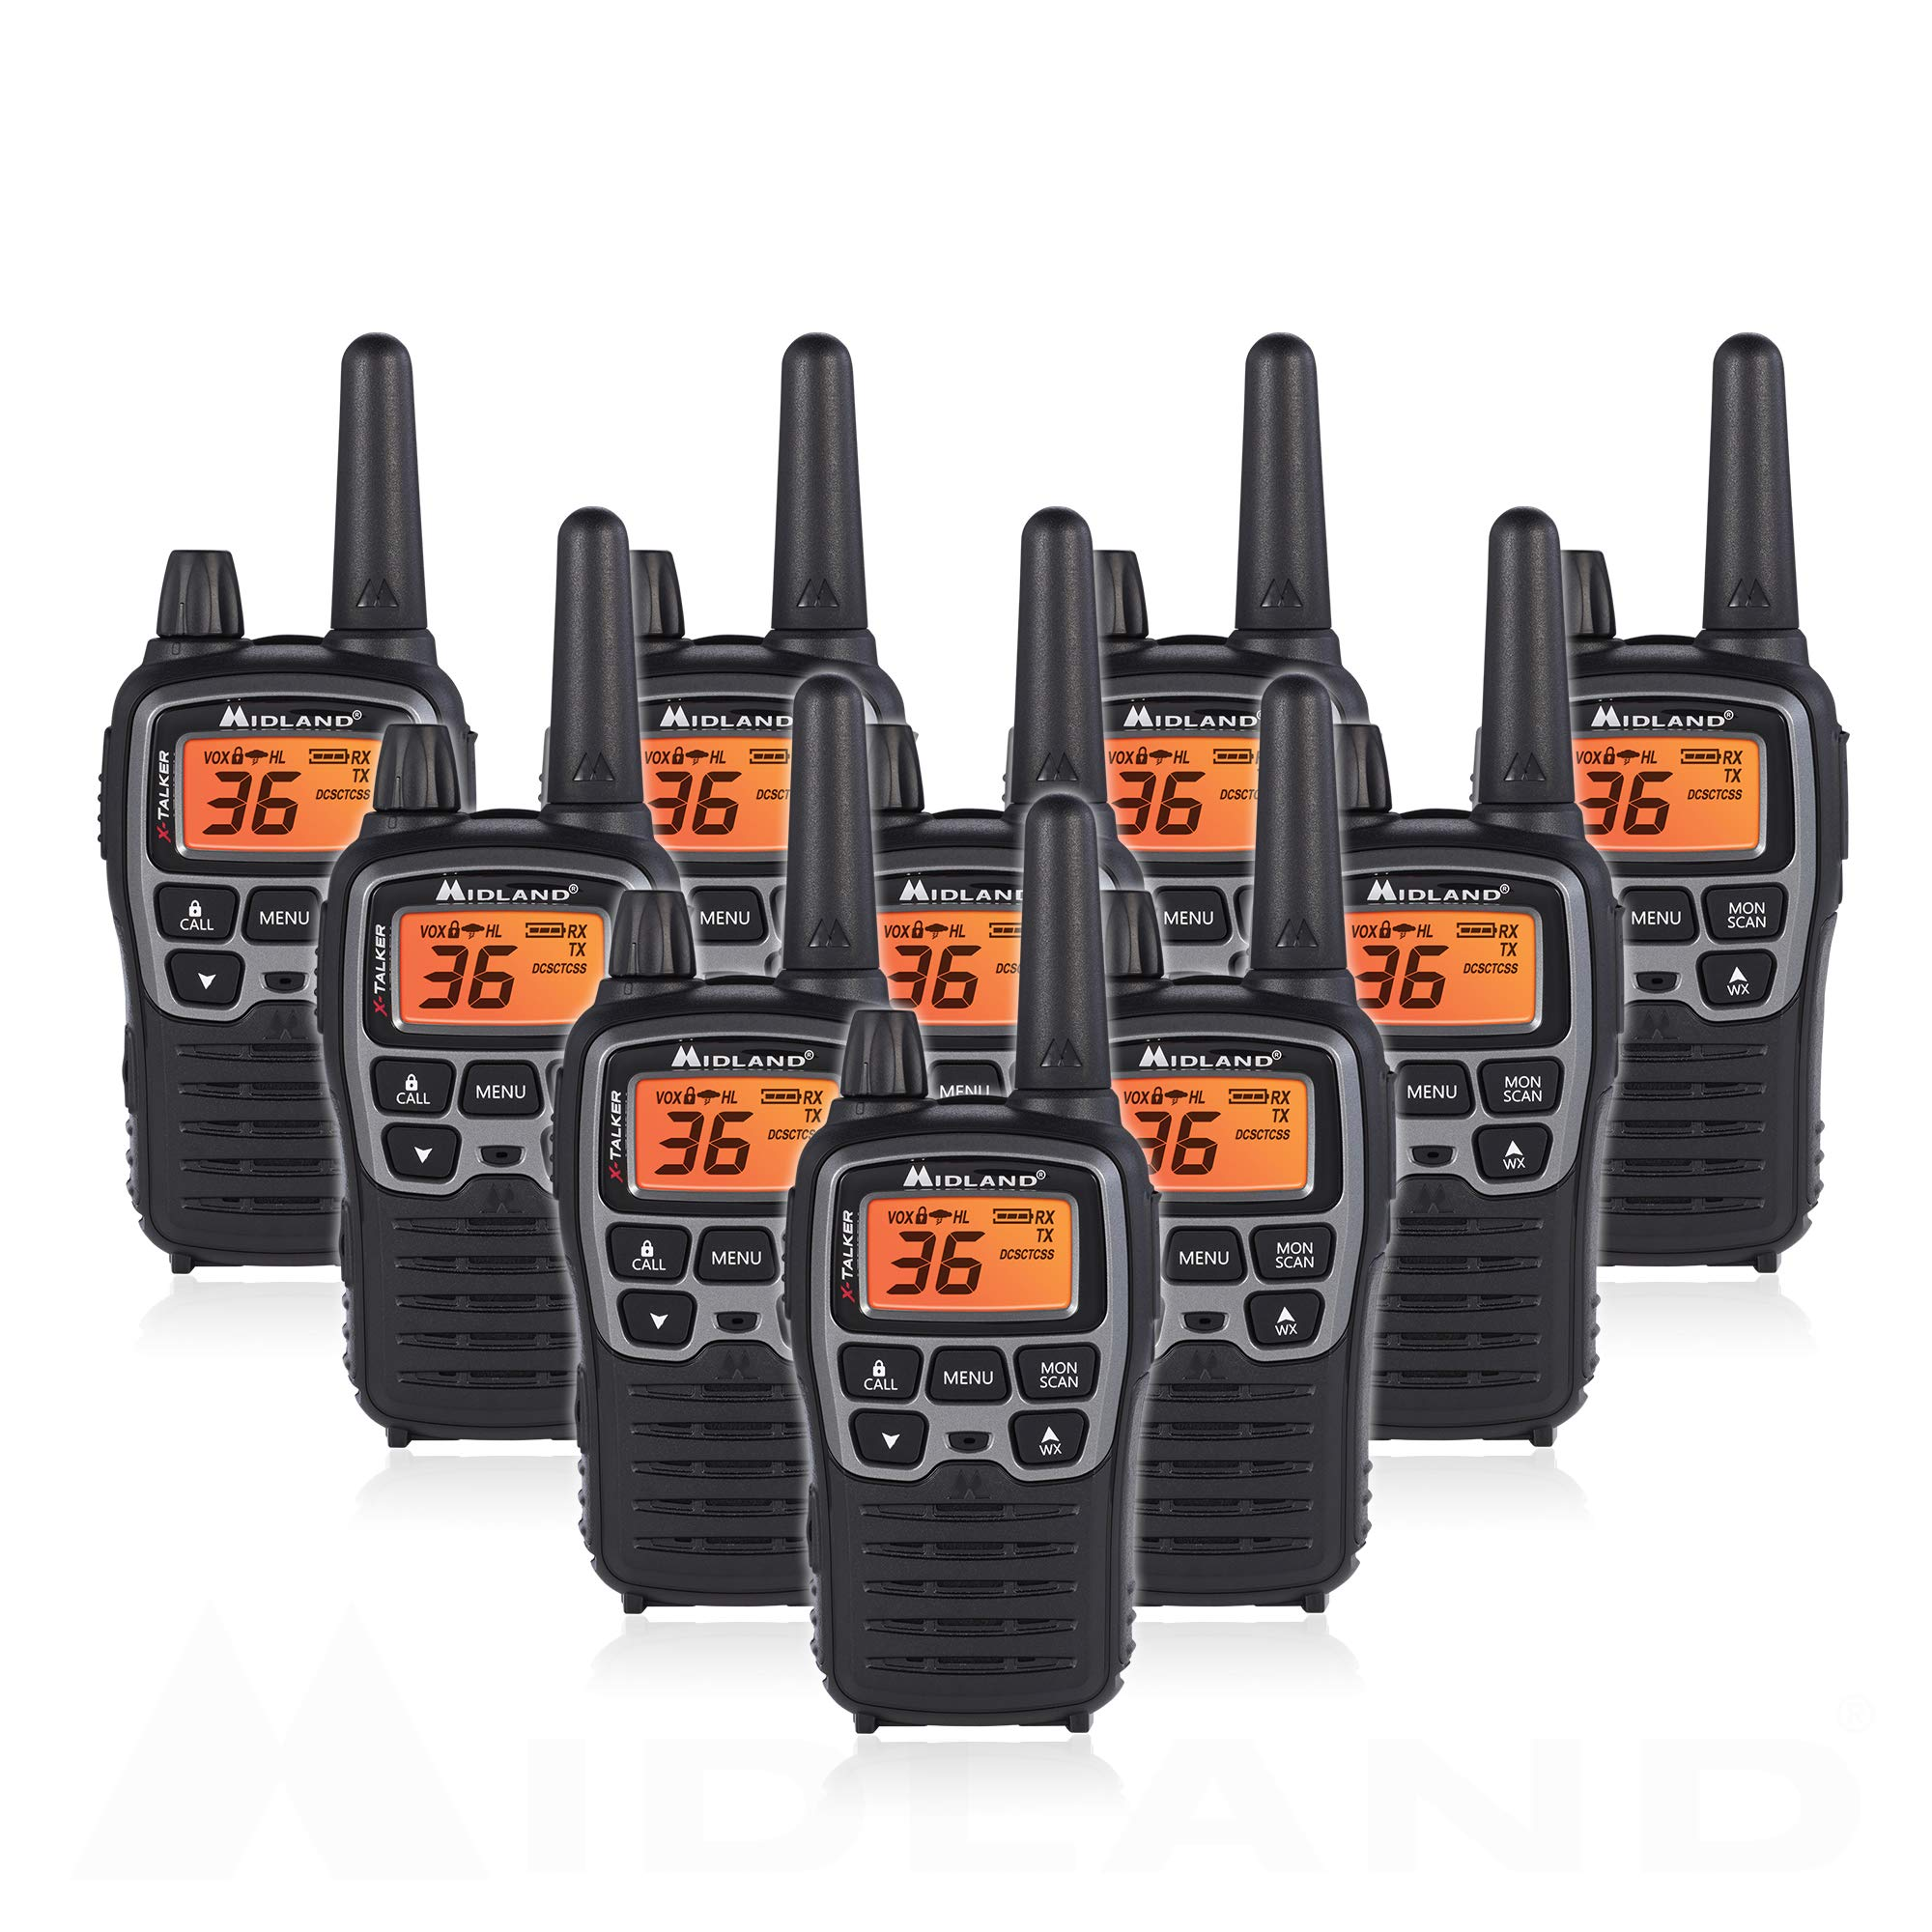 Midland T71VP3 36 Channel FRS Two-Way Radio - Up to 38 Mile Range Walkie Talkie - Black/Silver (Pack of 10) by Midland